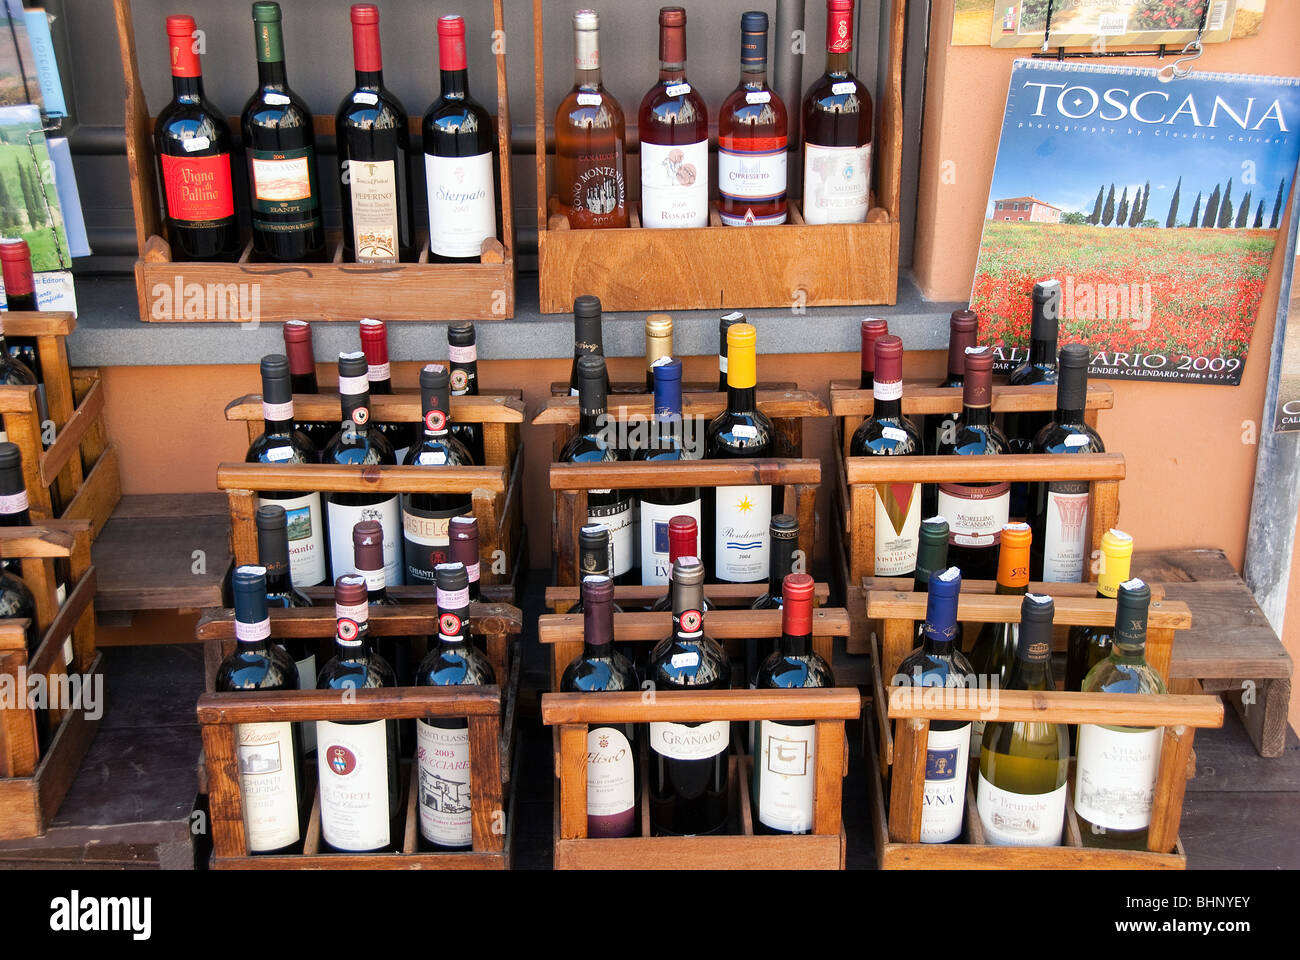 Wine for sale in the Tuscan town of Montaione, Italy Stock